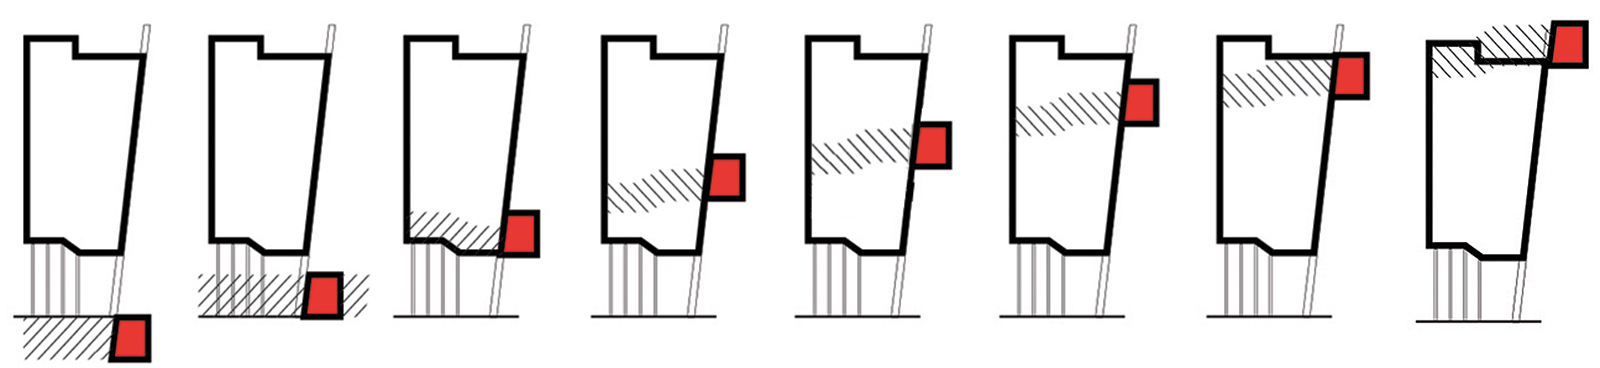 Diagrams of the possible variations of the moving room at various levels of the CART project